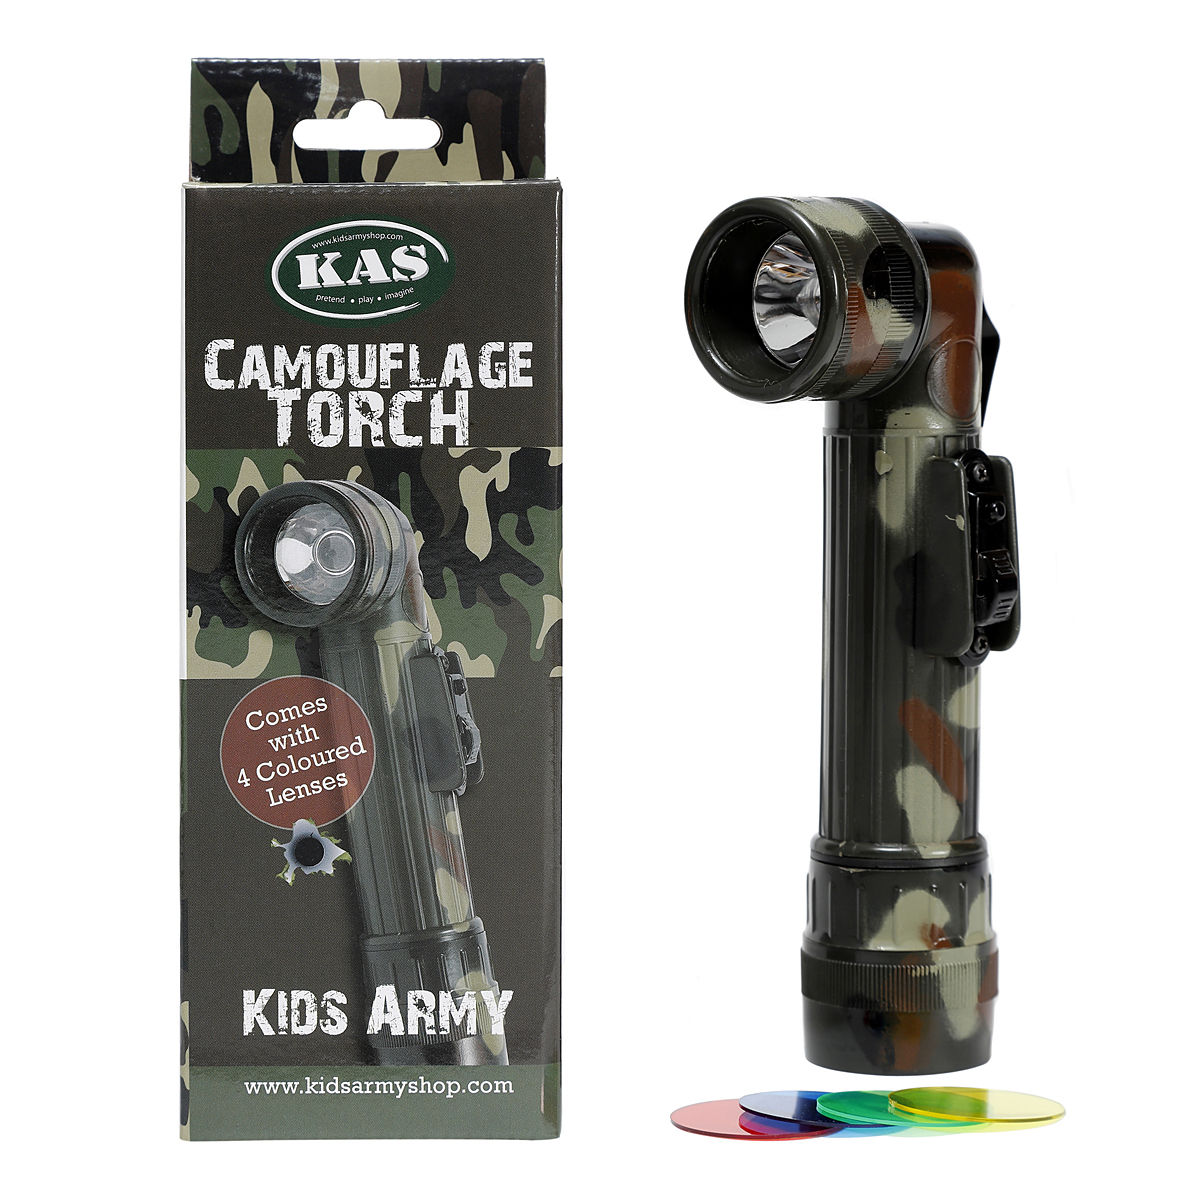 Camouflage Torch